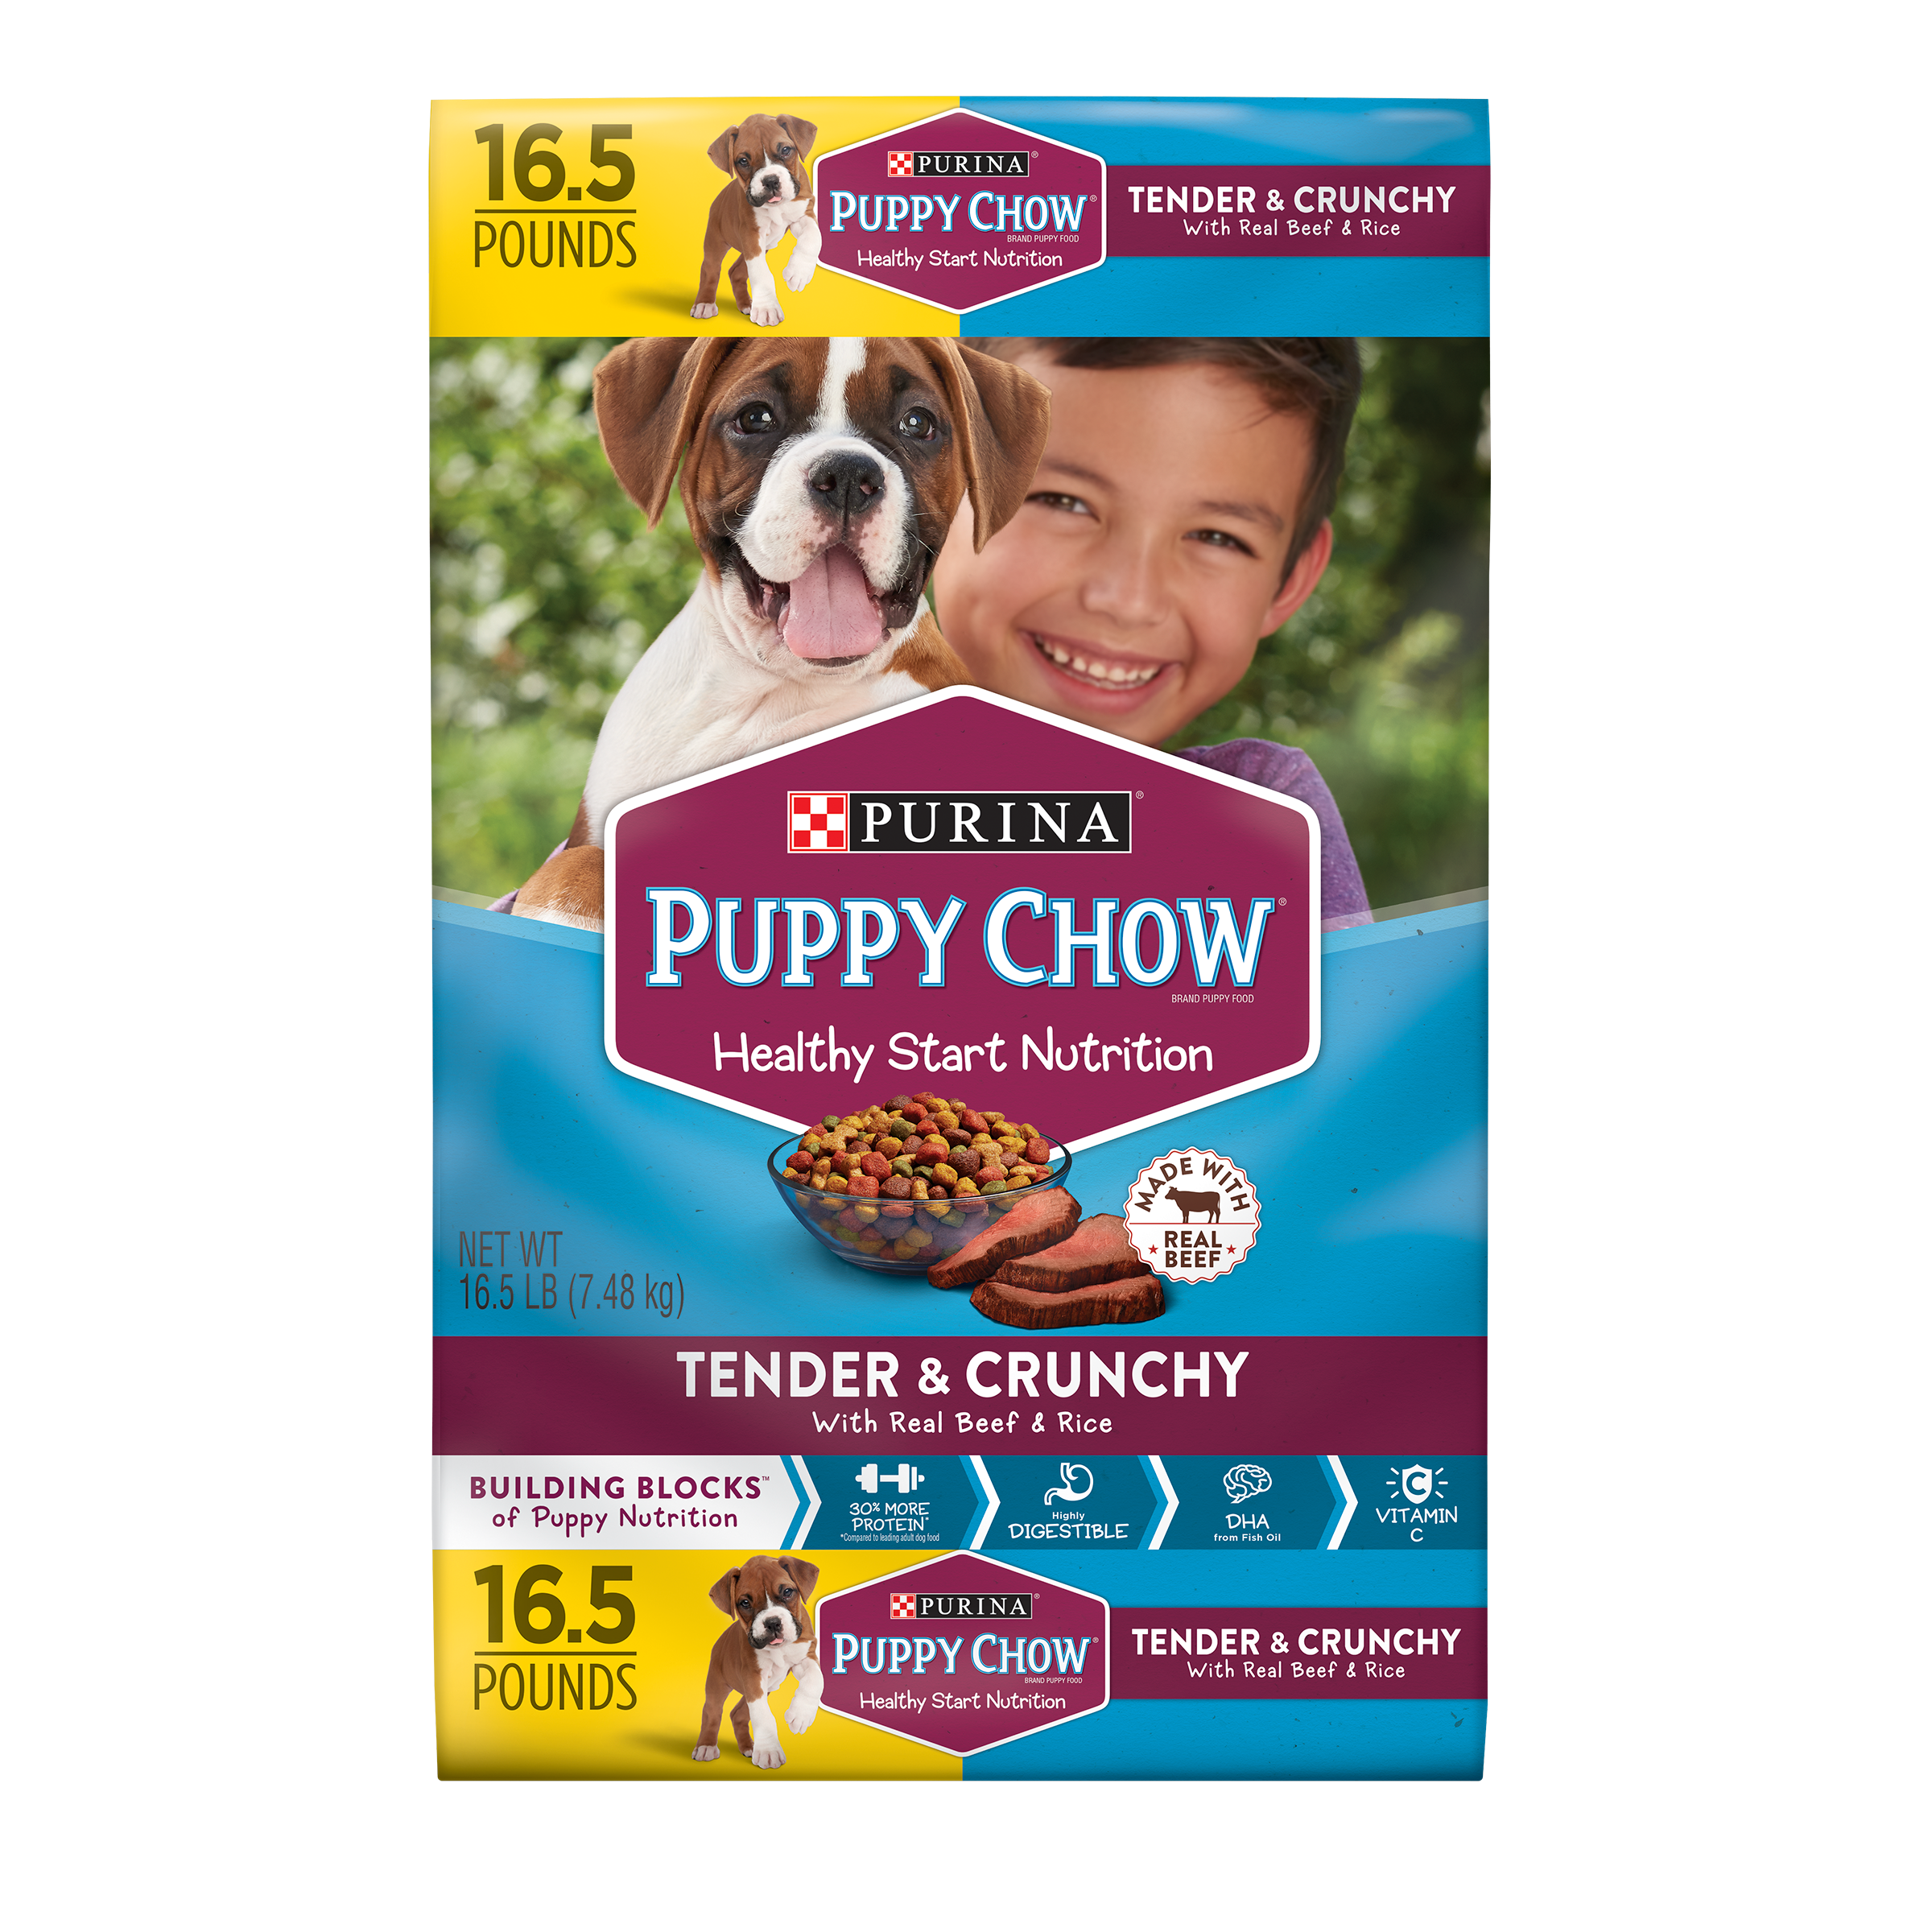 Purina Puppy Chow High Protein Dry Puppy Food; Tender & Crunchy with Real Beef - 16.5 lb. Bag